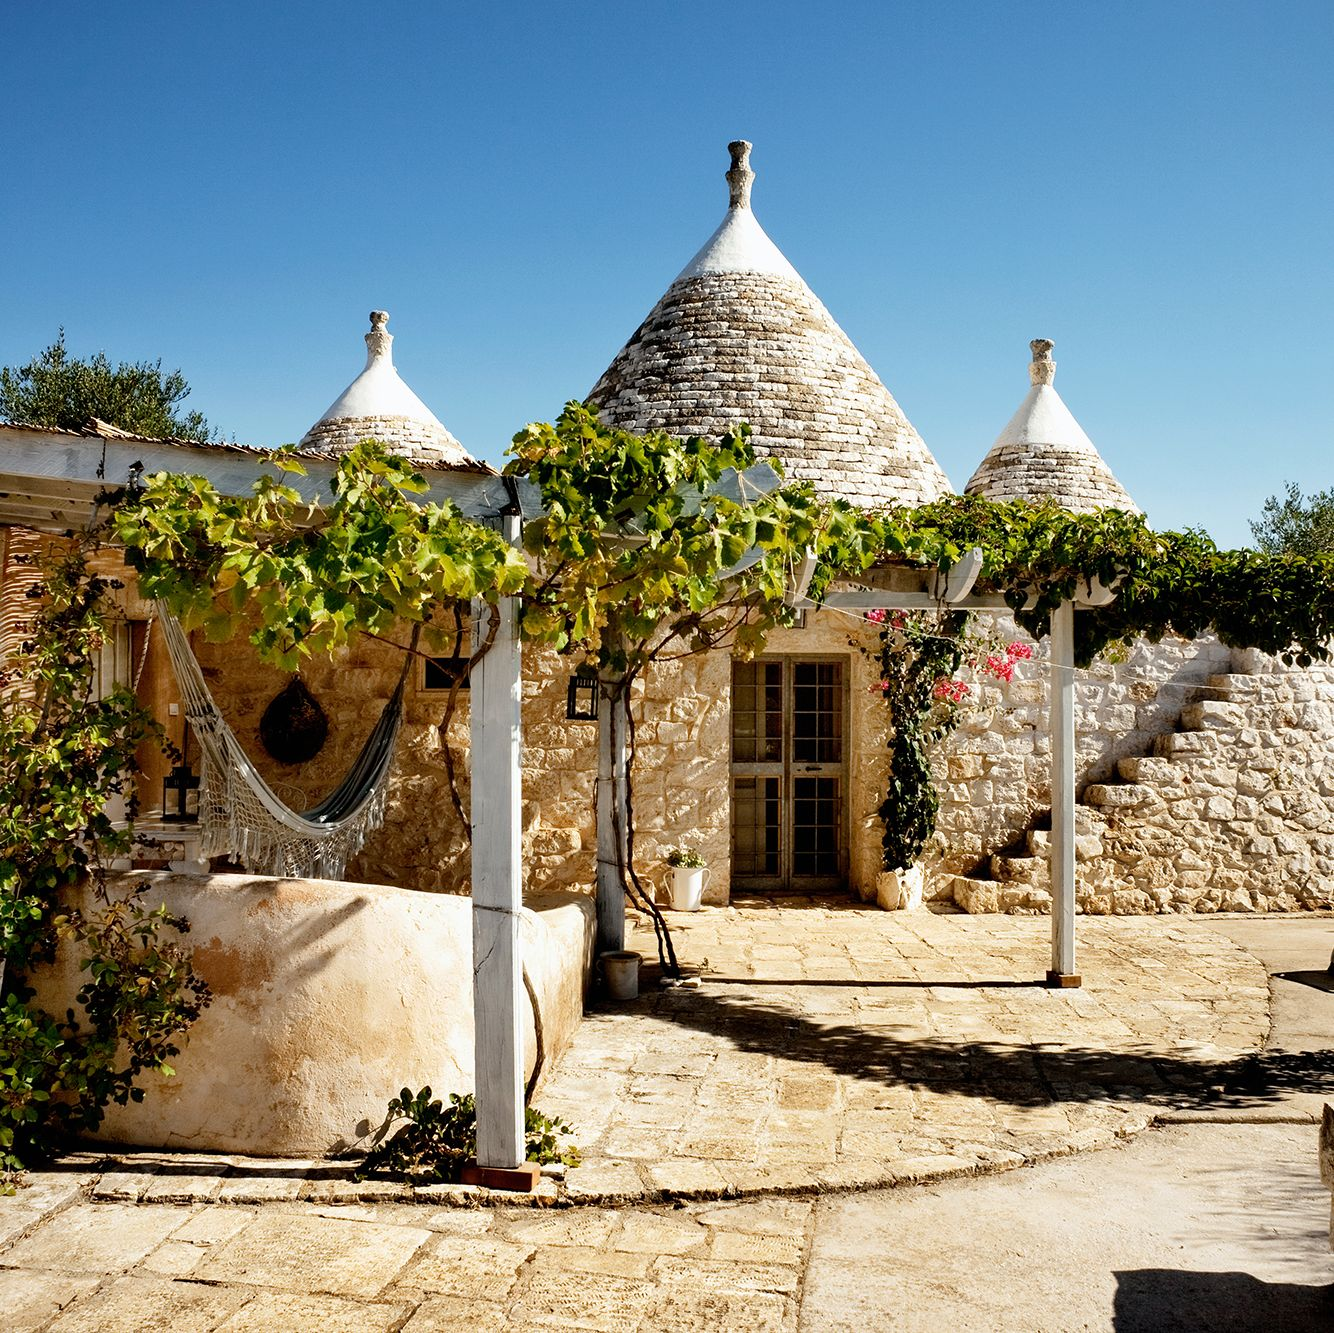 Trullo airbnb in Italy